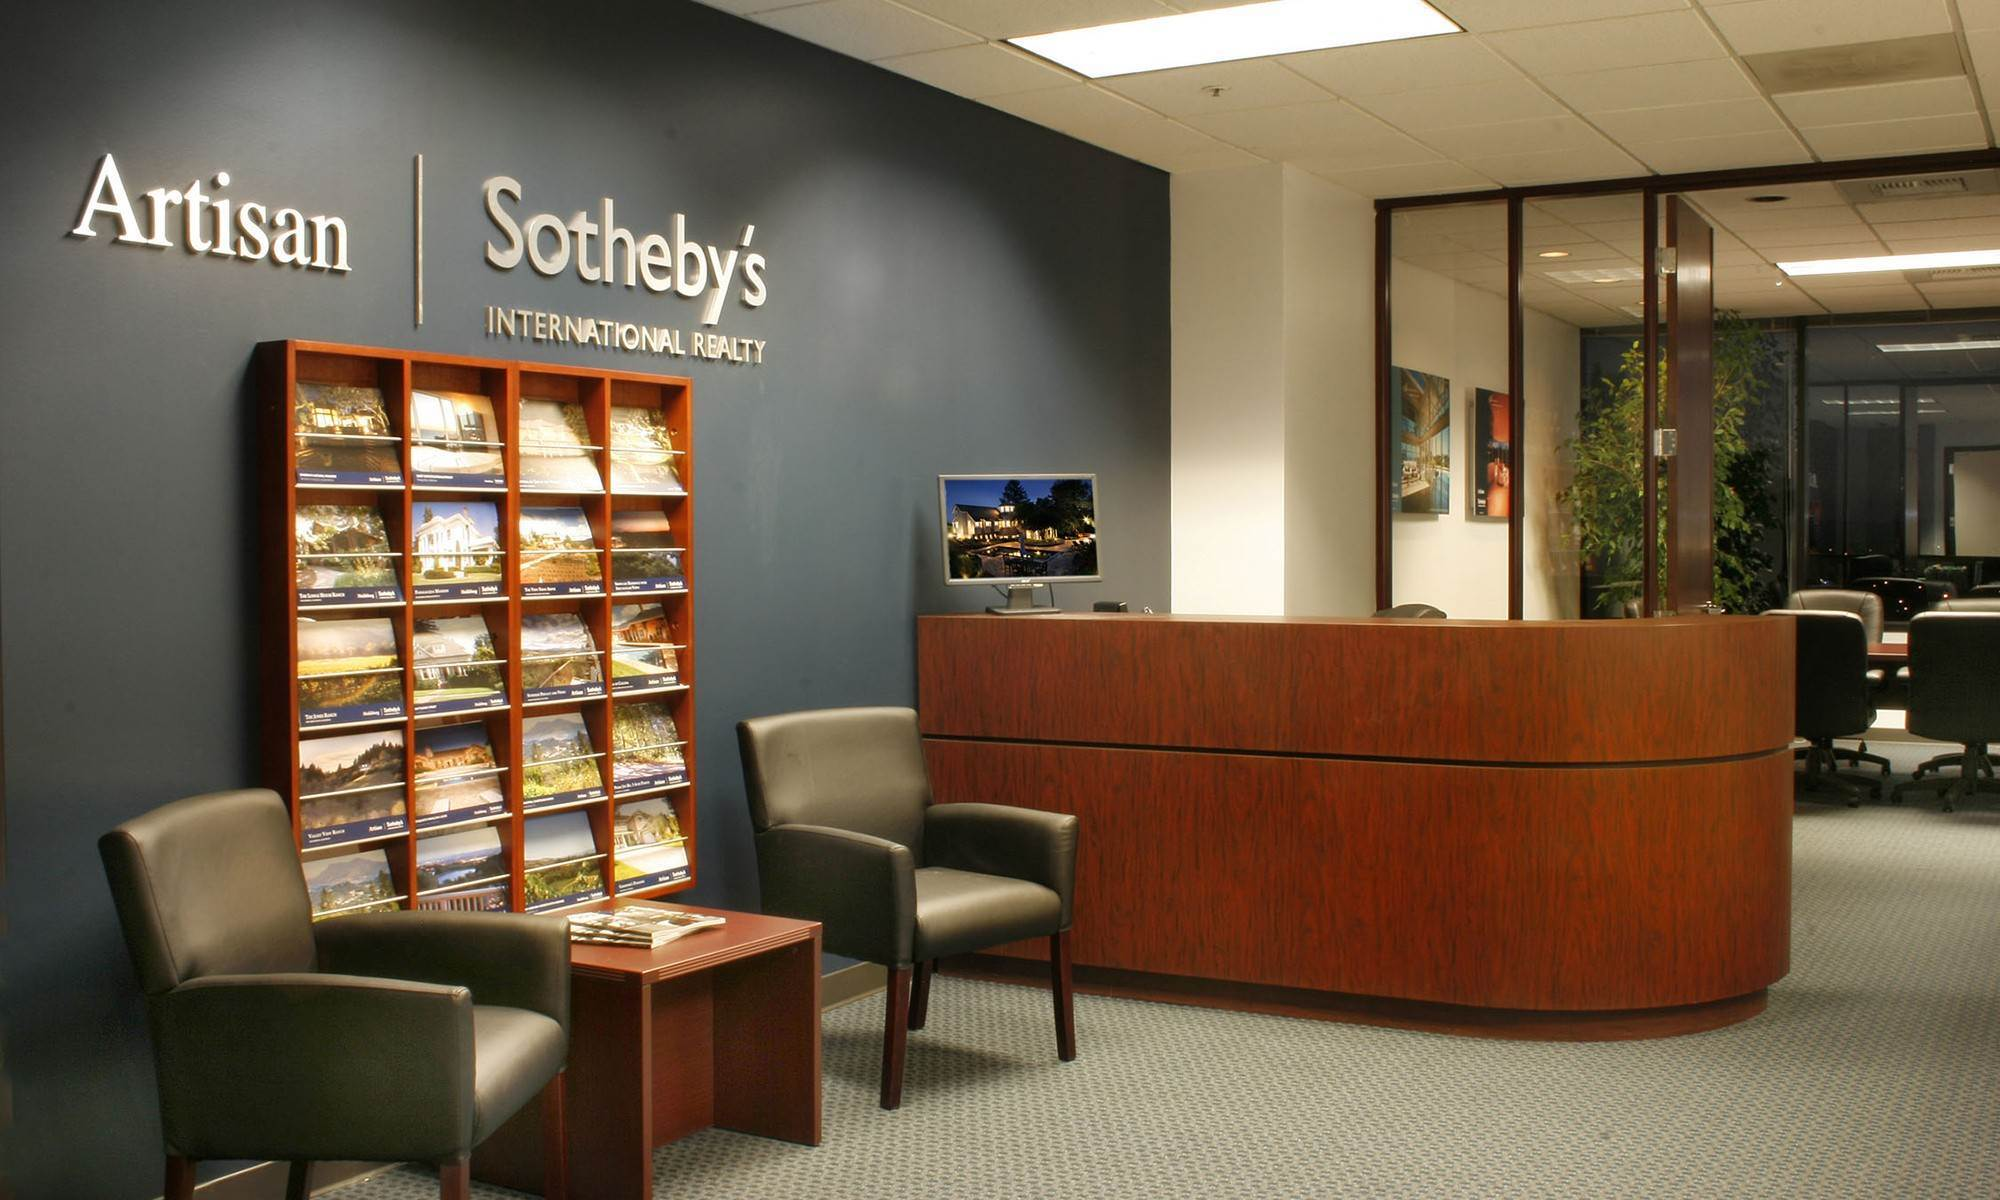 Artisan Sotheby's International Realty